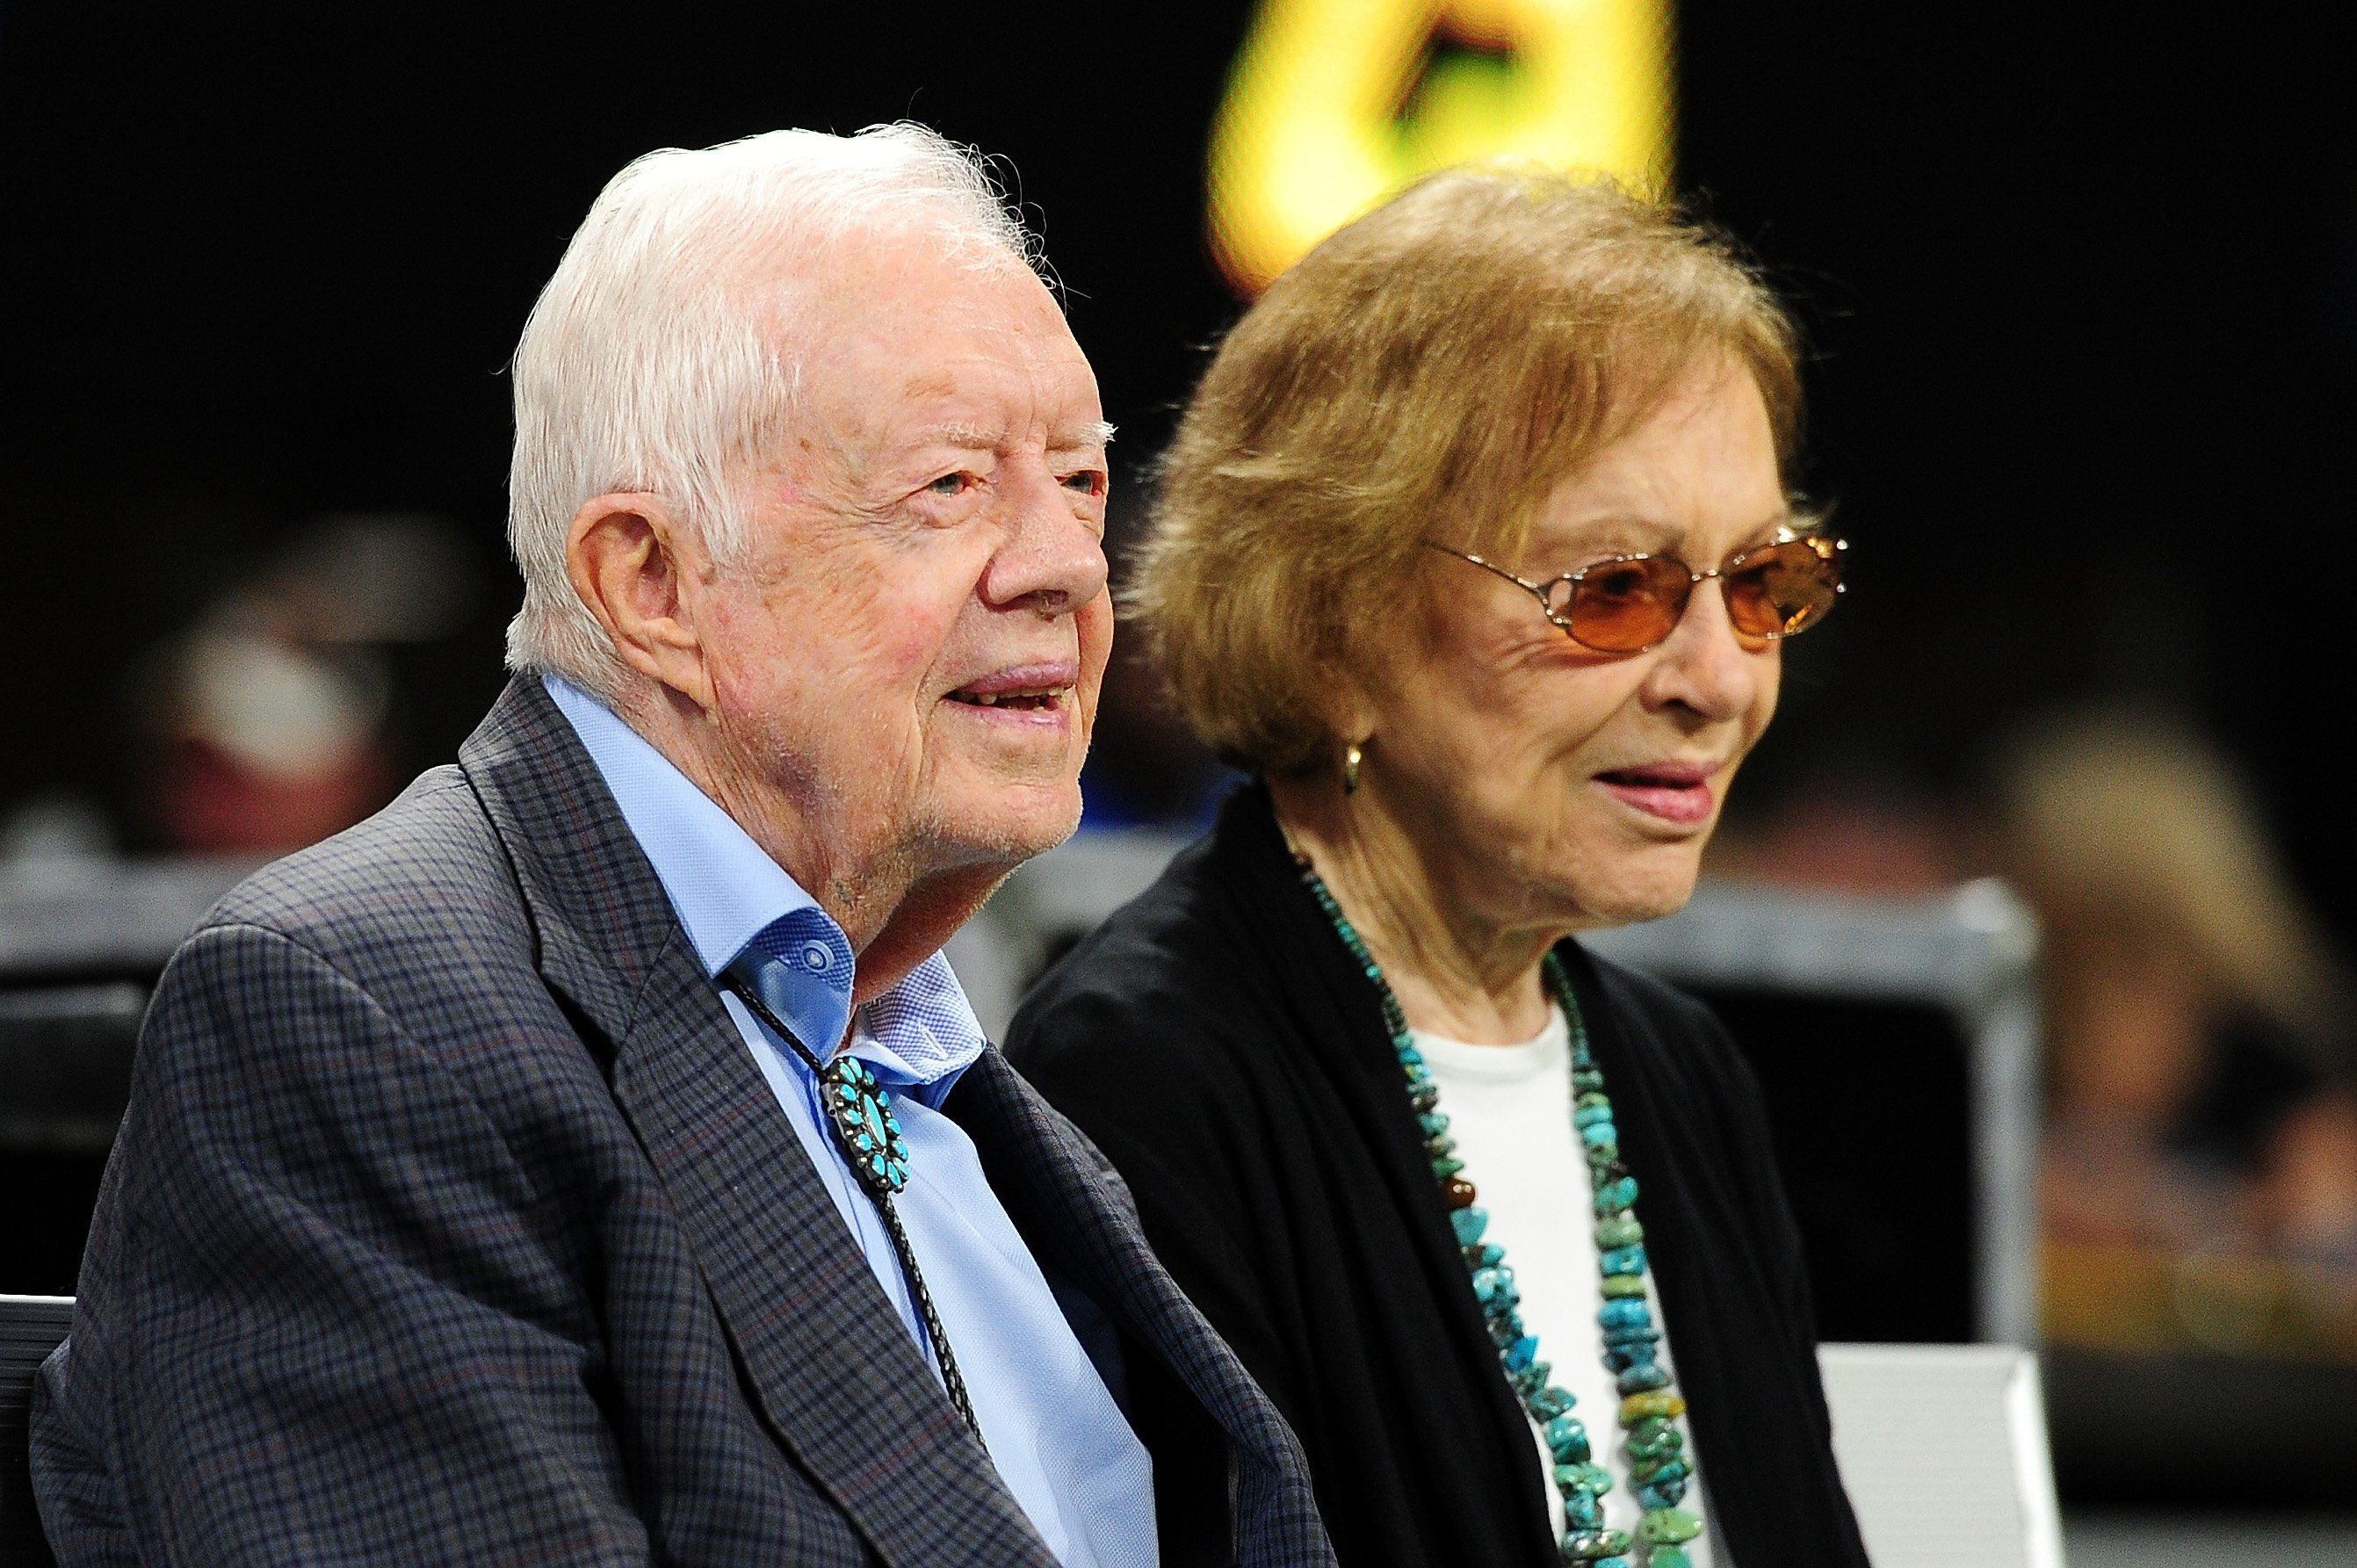 Former President Jimmy Carter and his wife Rosalynn at the Atlanta Falcons and the Cincinnati Bengals held at Mercedes-Benz Stadium on September 30, 2018 in Atlanta, Georgia | Photo: Getty Images